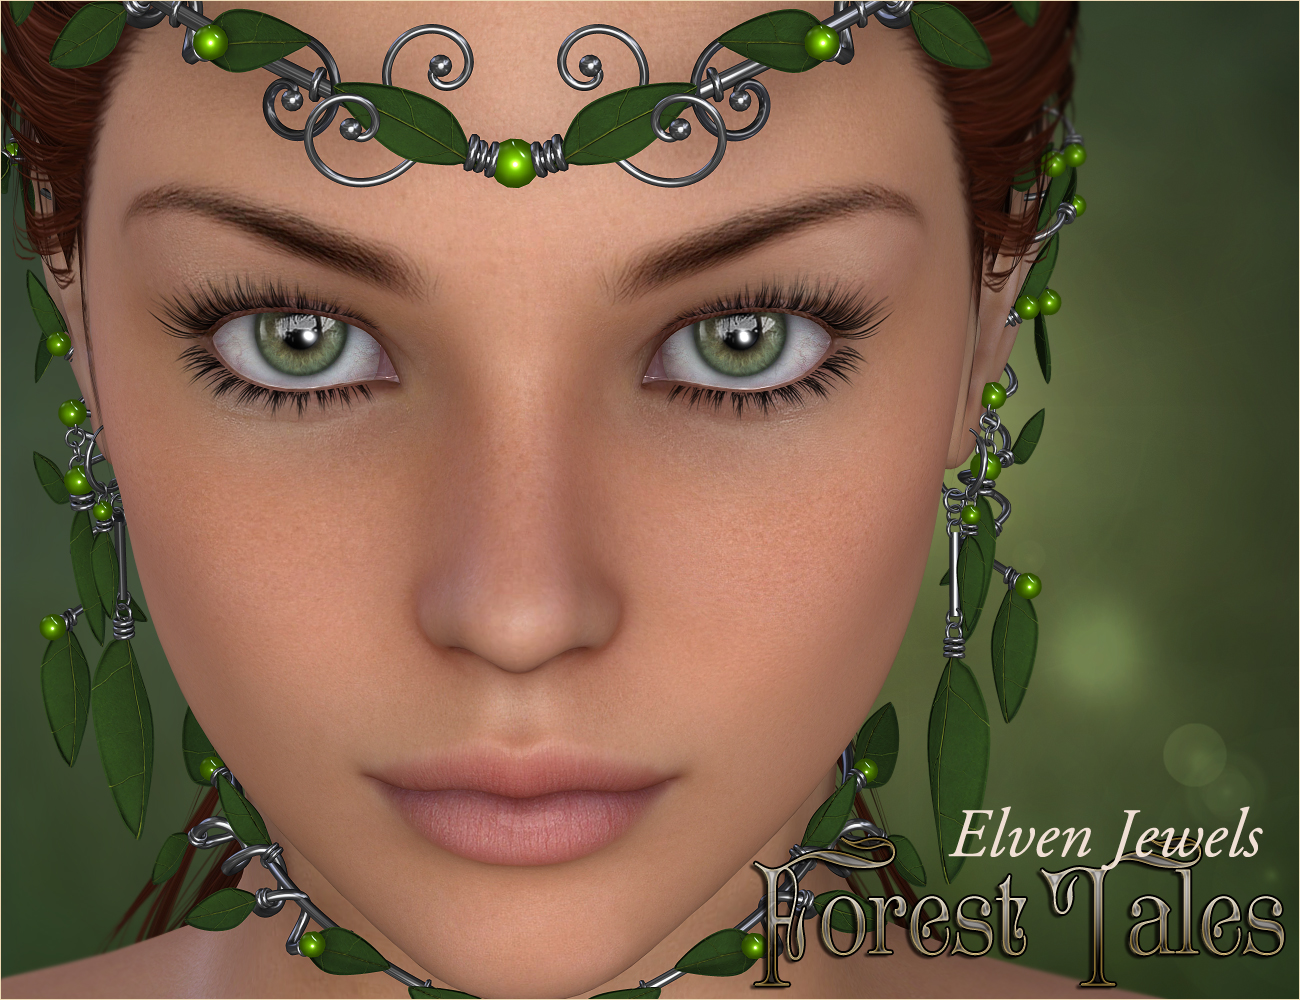 Forest Tales - Elven Jewels by digiPixel